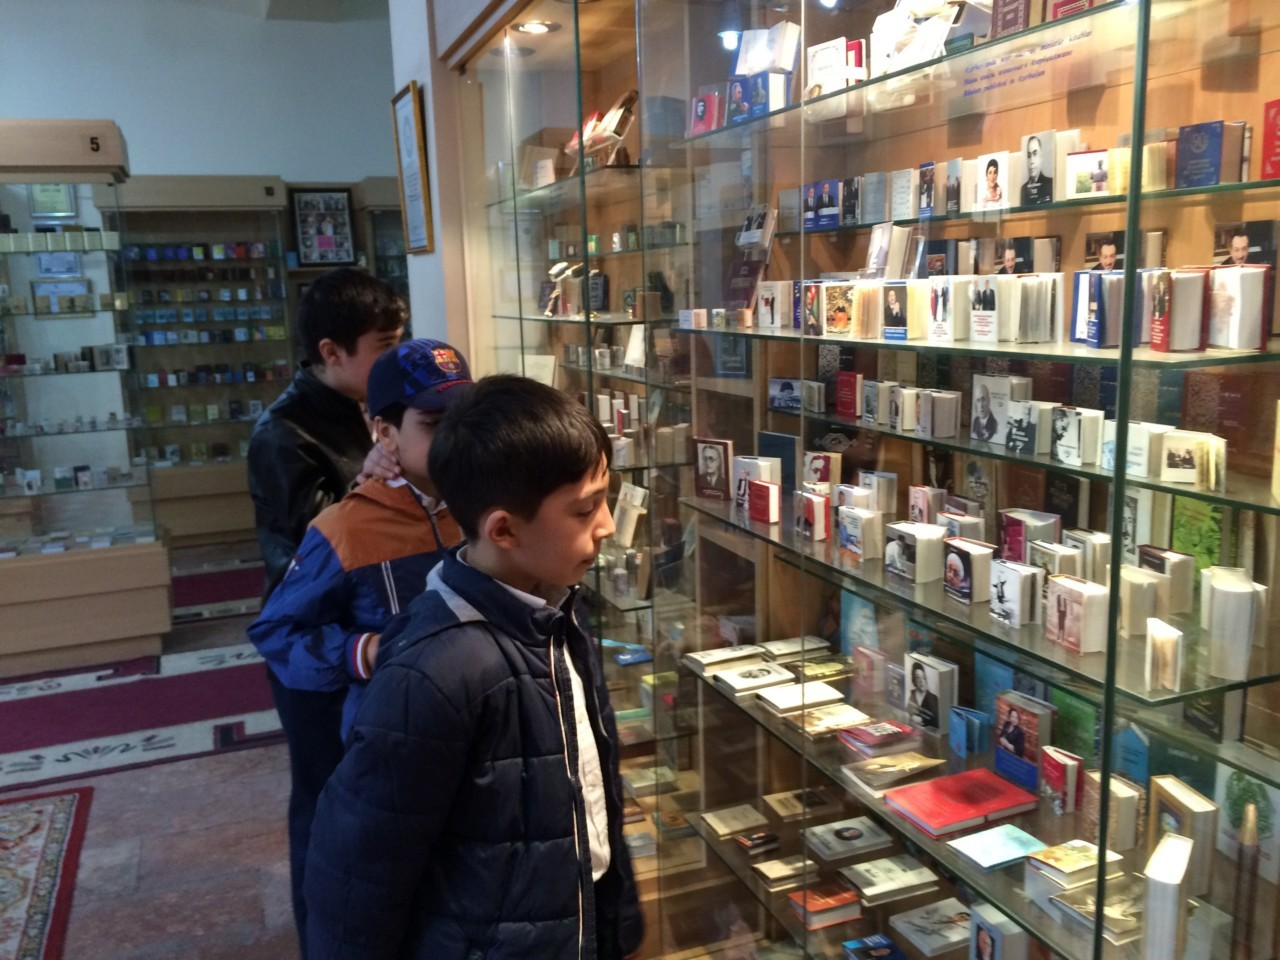 Museum of Miniature Books in Baku